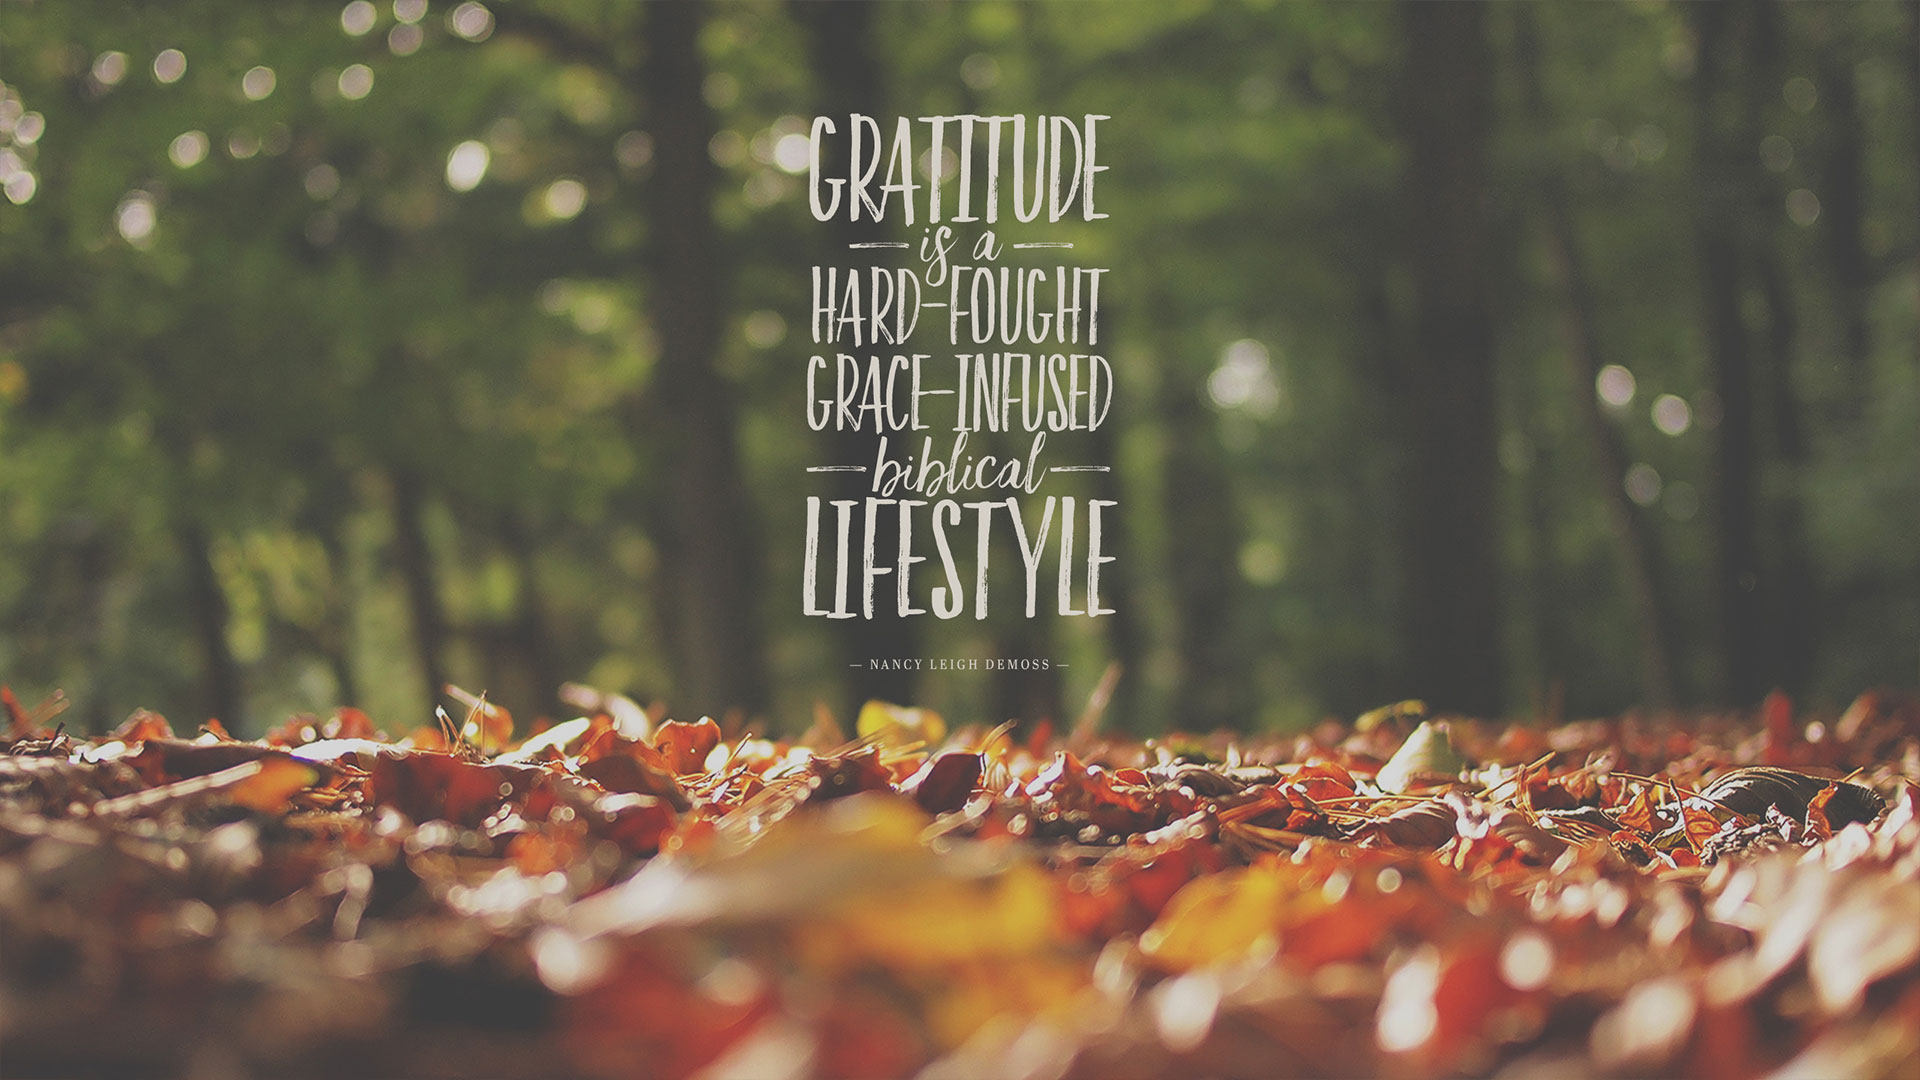 Wednesday Wallpaper Gratitude is a Lifestyle   Jacob Abshire 1920x1080